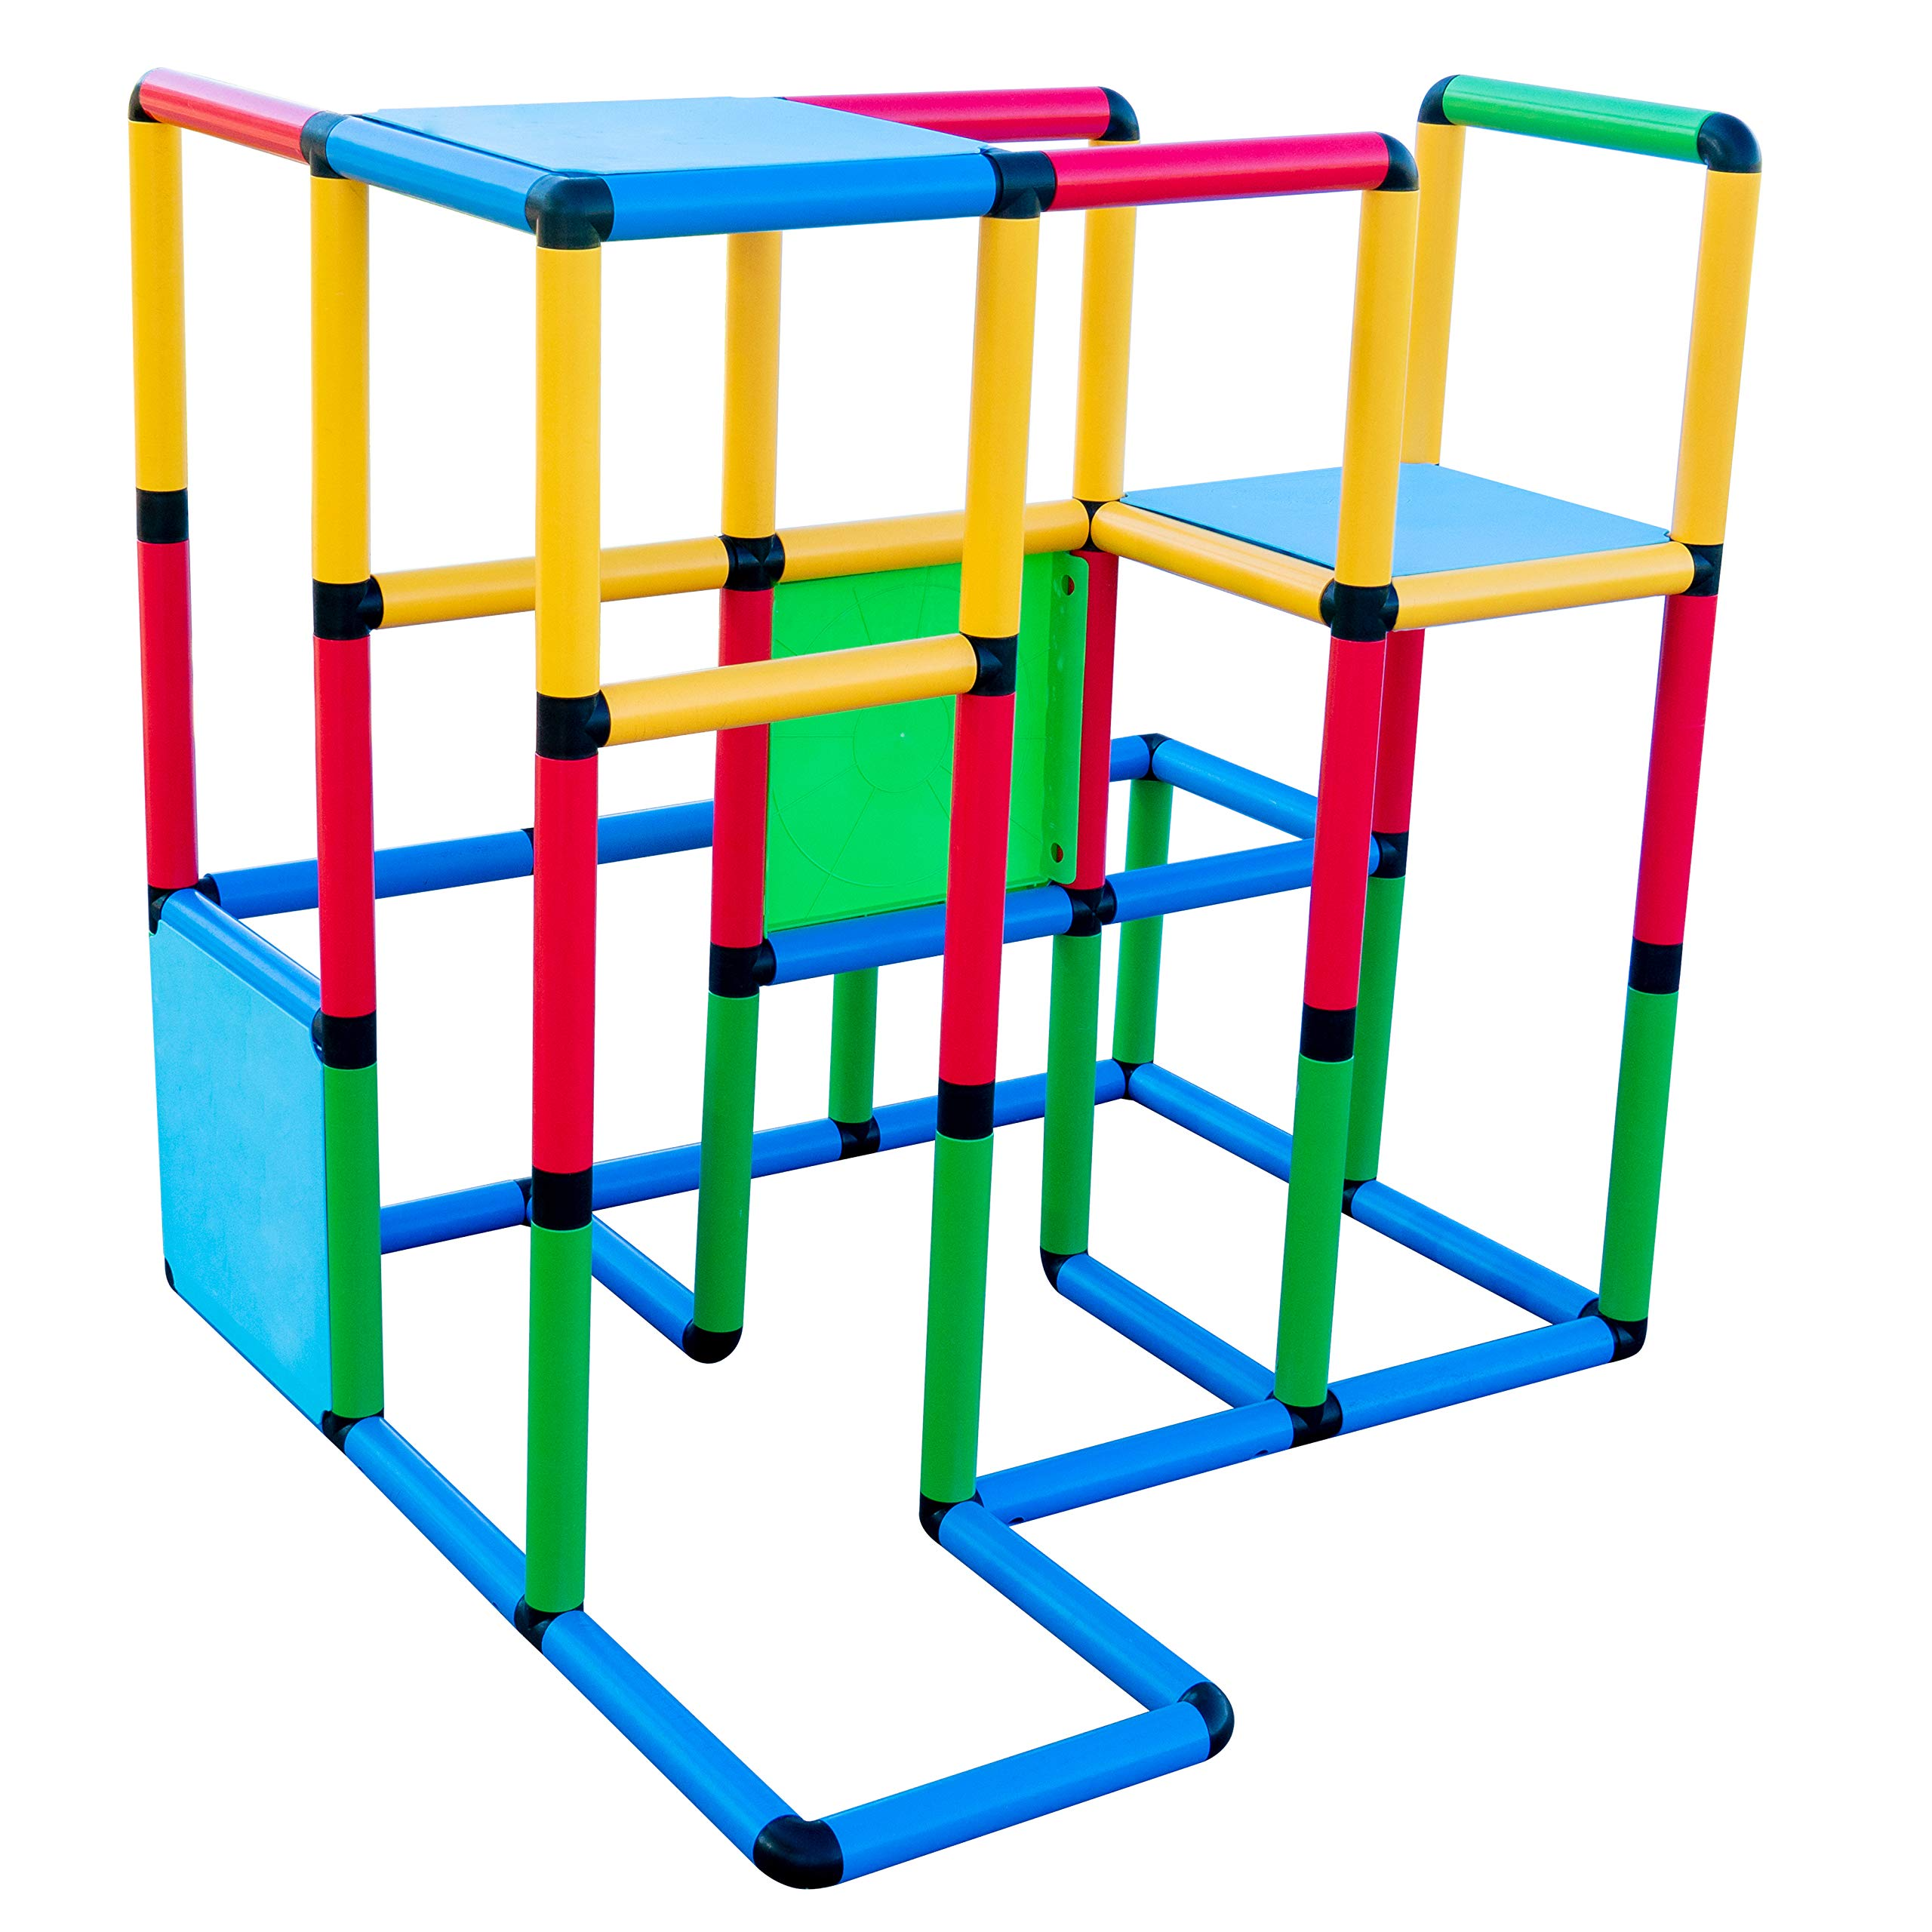 Funphix Deluxe 296 Piece Construction Toy Set - Building Play-Structures for Indoors & Outdoors - Fun & Educational Learning Toys for Ages 2 to 12 by Funphix (Image #4)